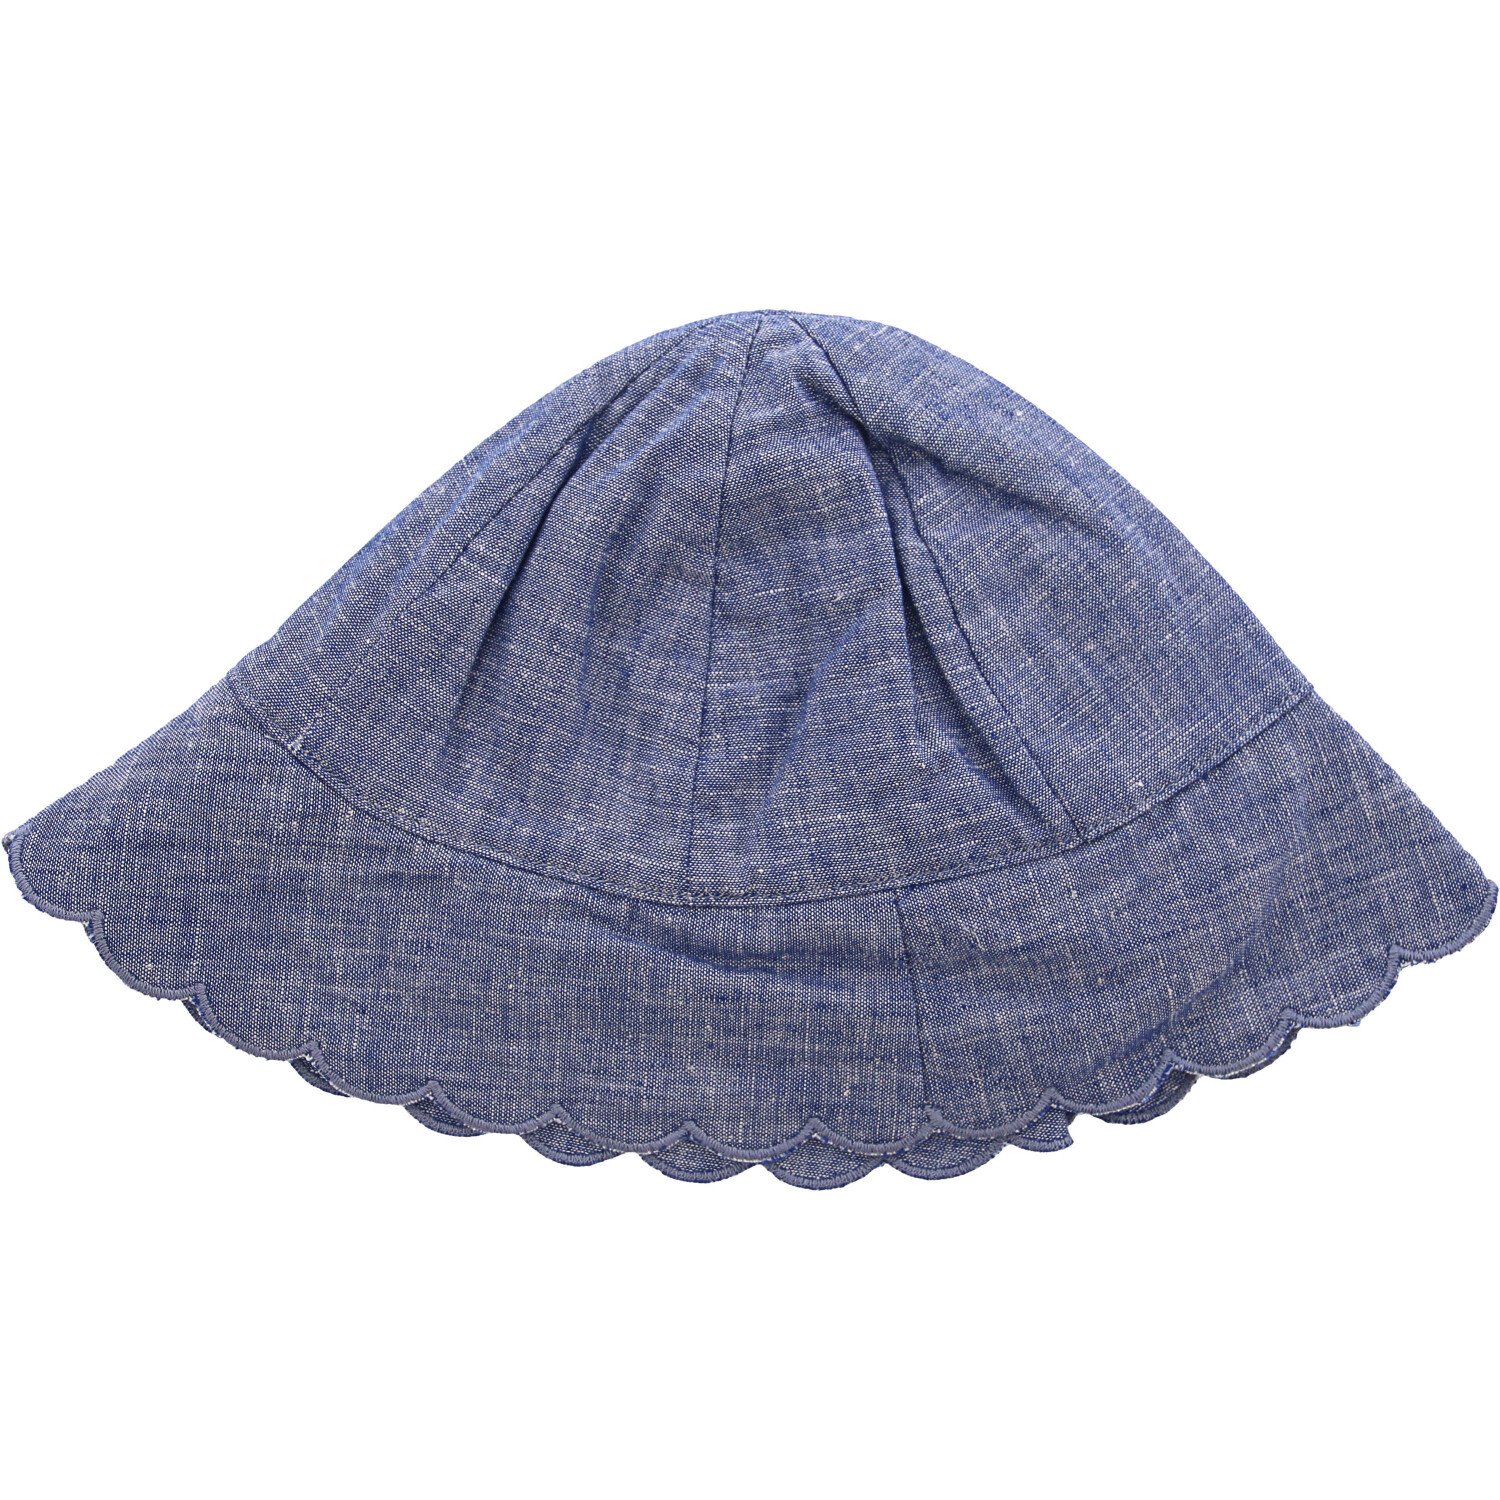 Janie And Jack Denim Blue Scalloped Chambray Sun Hat Hats & Cap - 18-24 Months